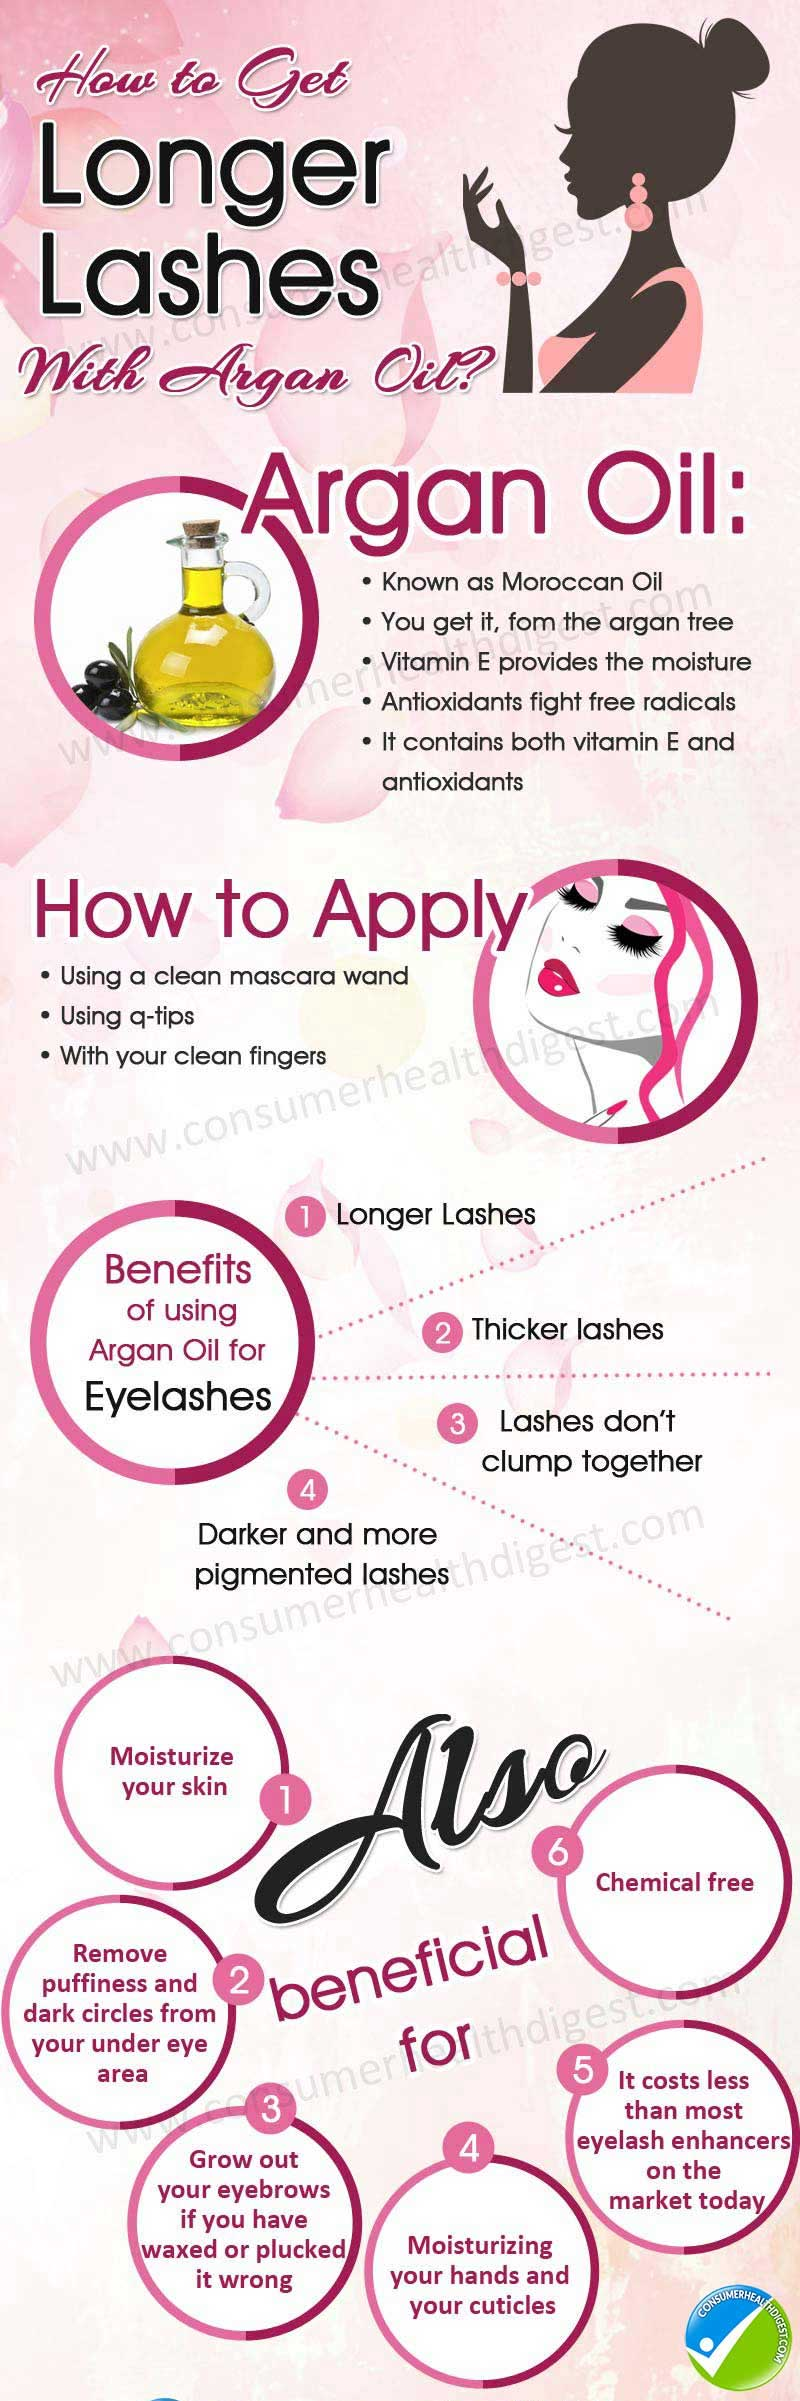 Eyelashes with Argan Oil Info